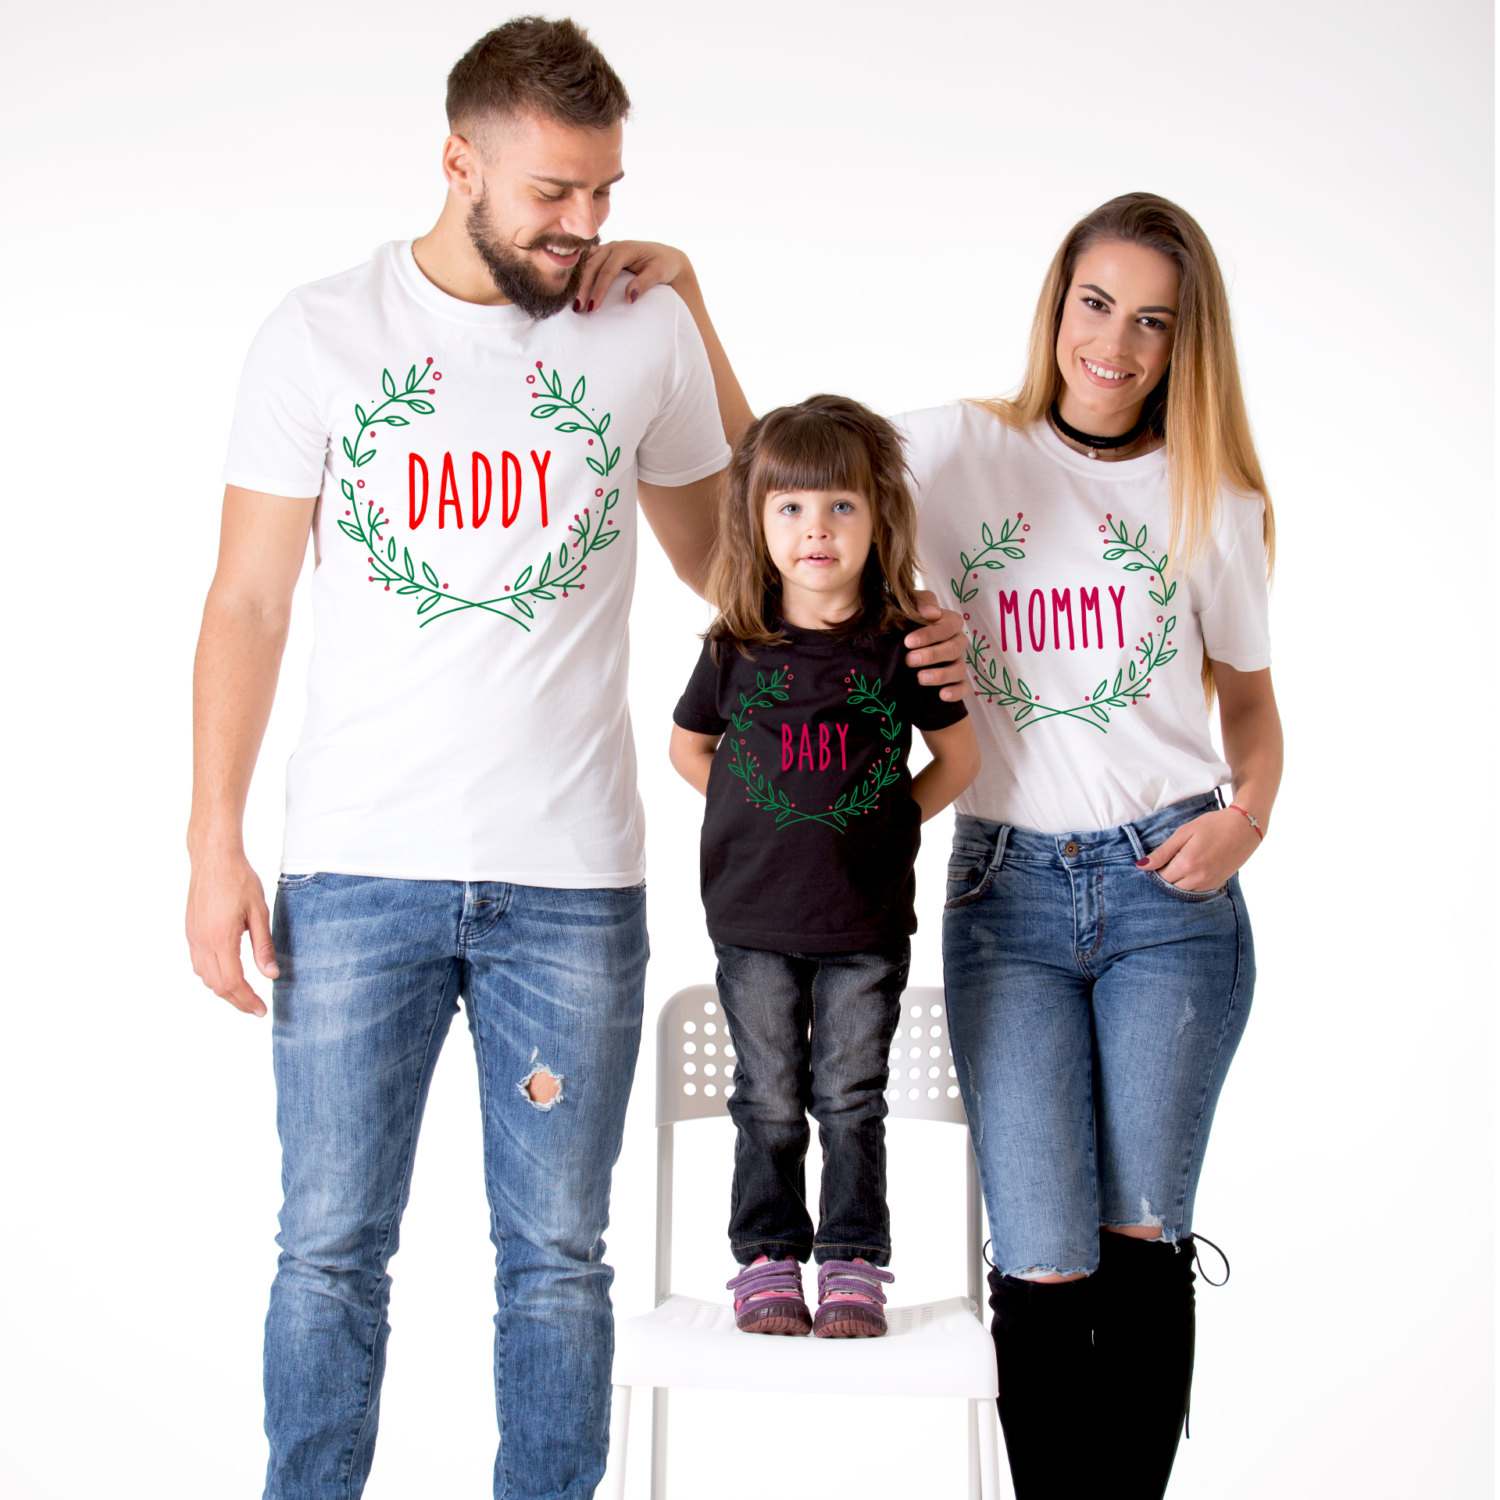 fe24ceca Christmas shirt, Mommy daddy baby Christmas matching shirts for the whole  family, Custom name